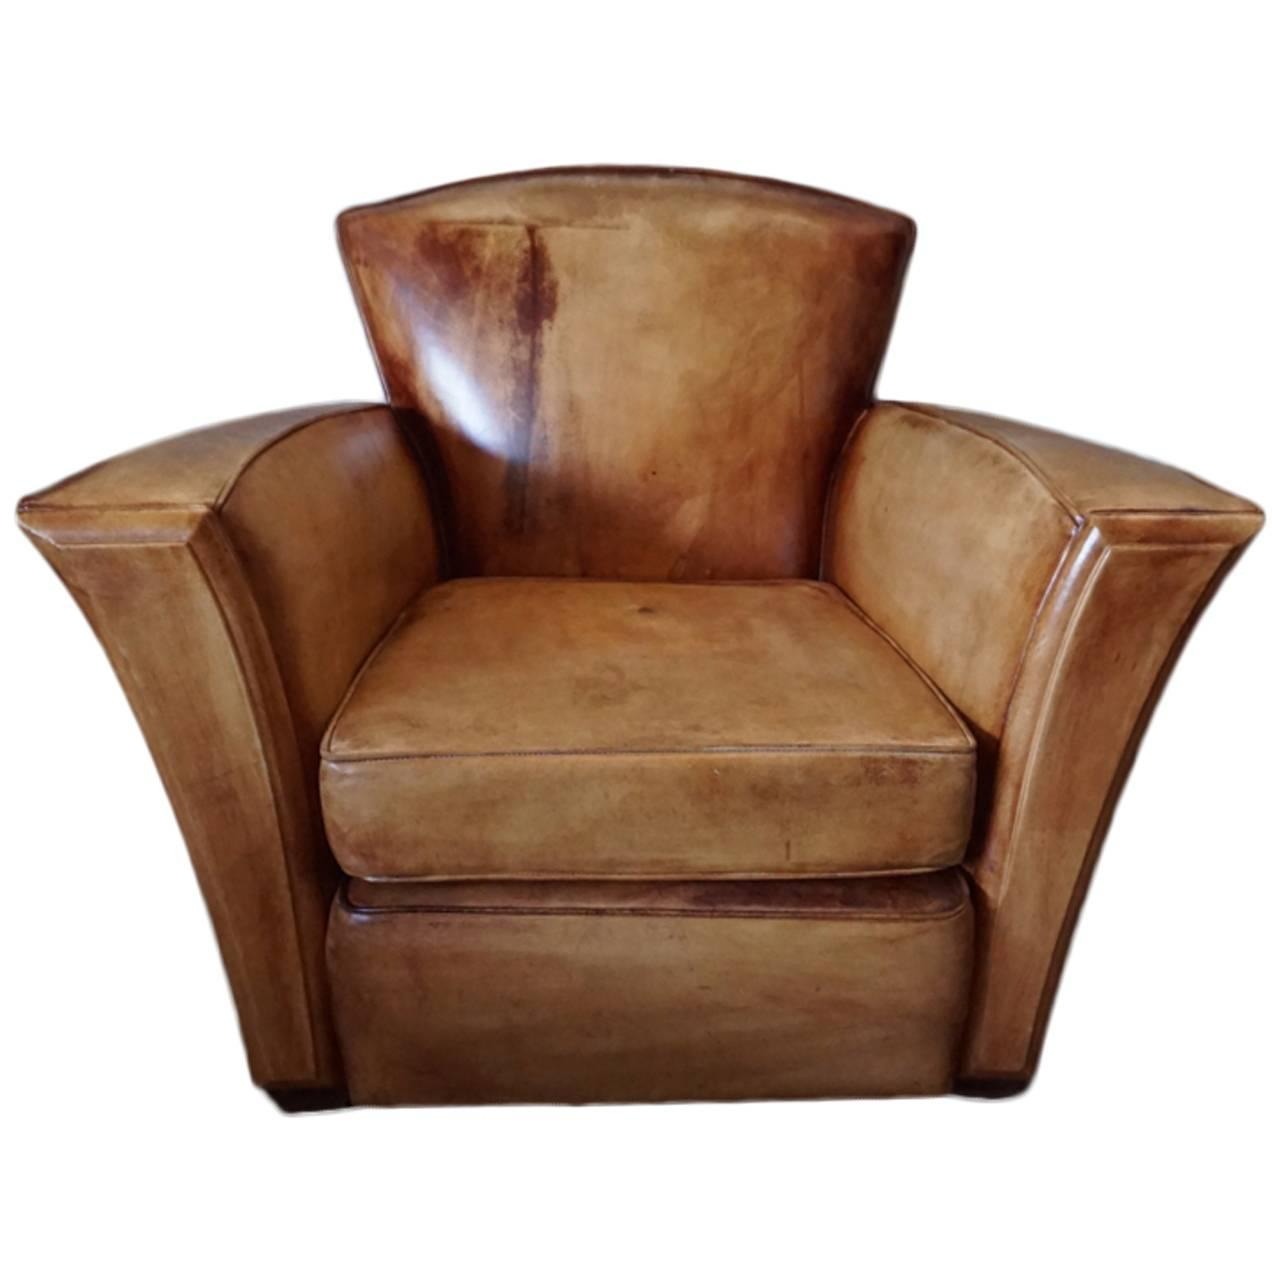 art deco club chairs leather oversized chair and ottoman vintage cognac style at 1stdibs